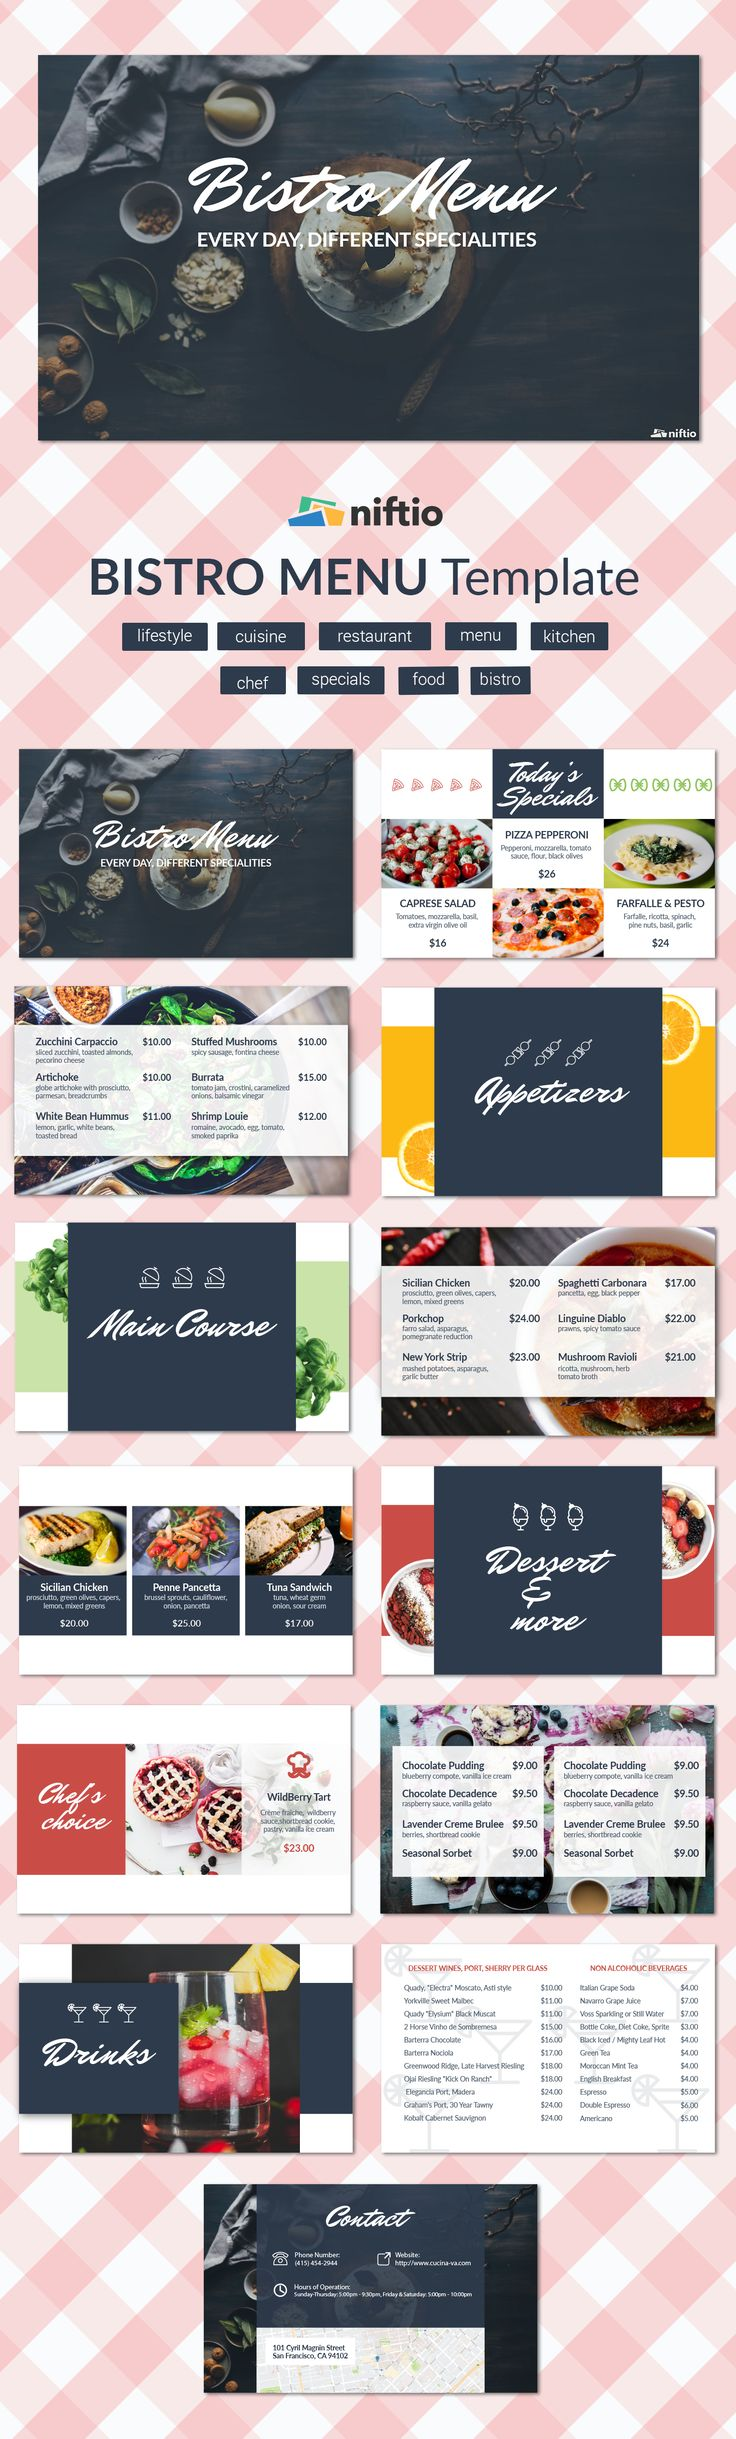 An online version of your menu is a great solution when your business focuses on new recipes. Find out how else your business can benefit from an online menu! #restaurant #cuisine #foodlover #foodrecipe #dessert